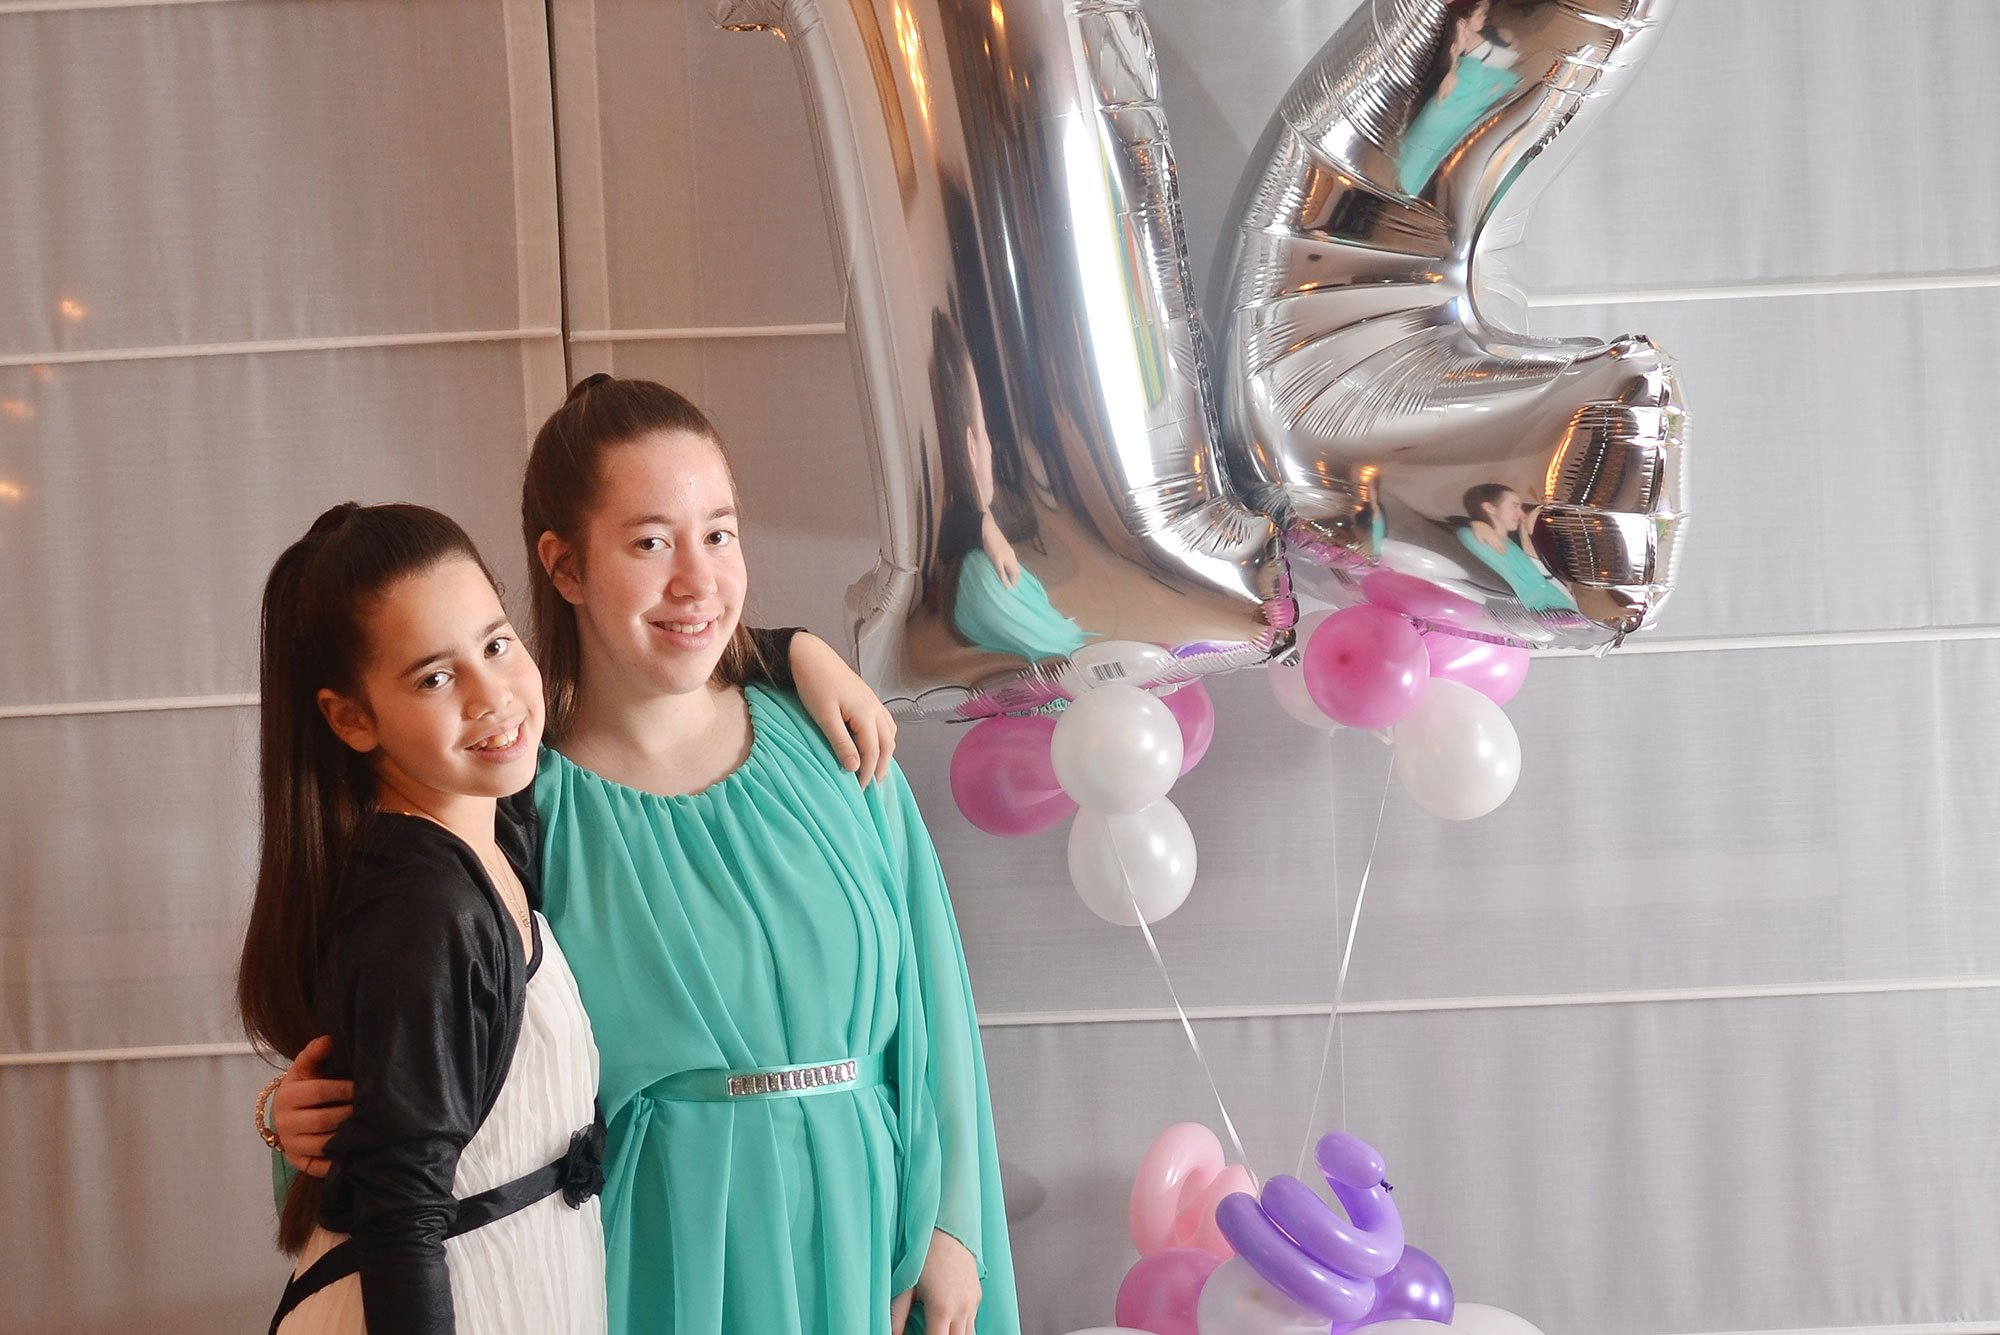 Young girls celebrating together with balloons